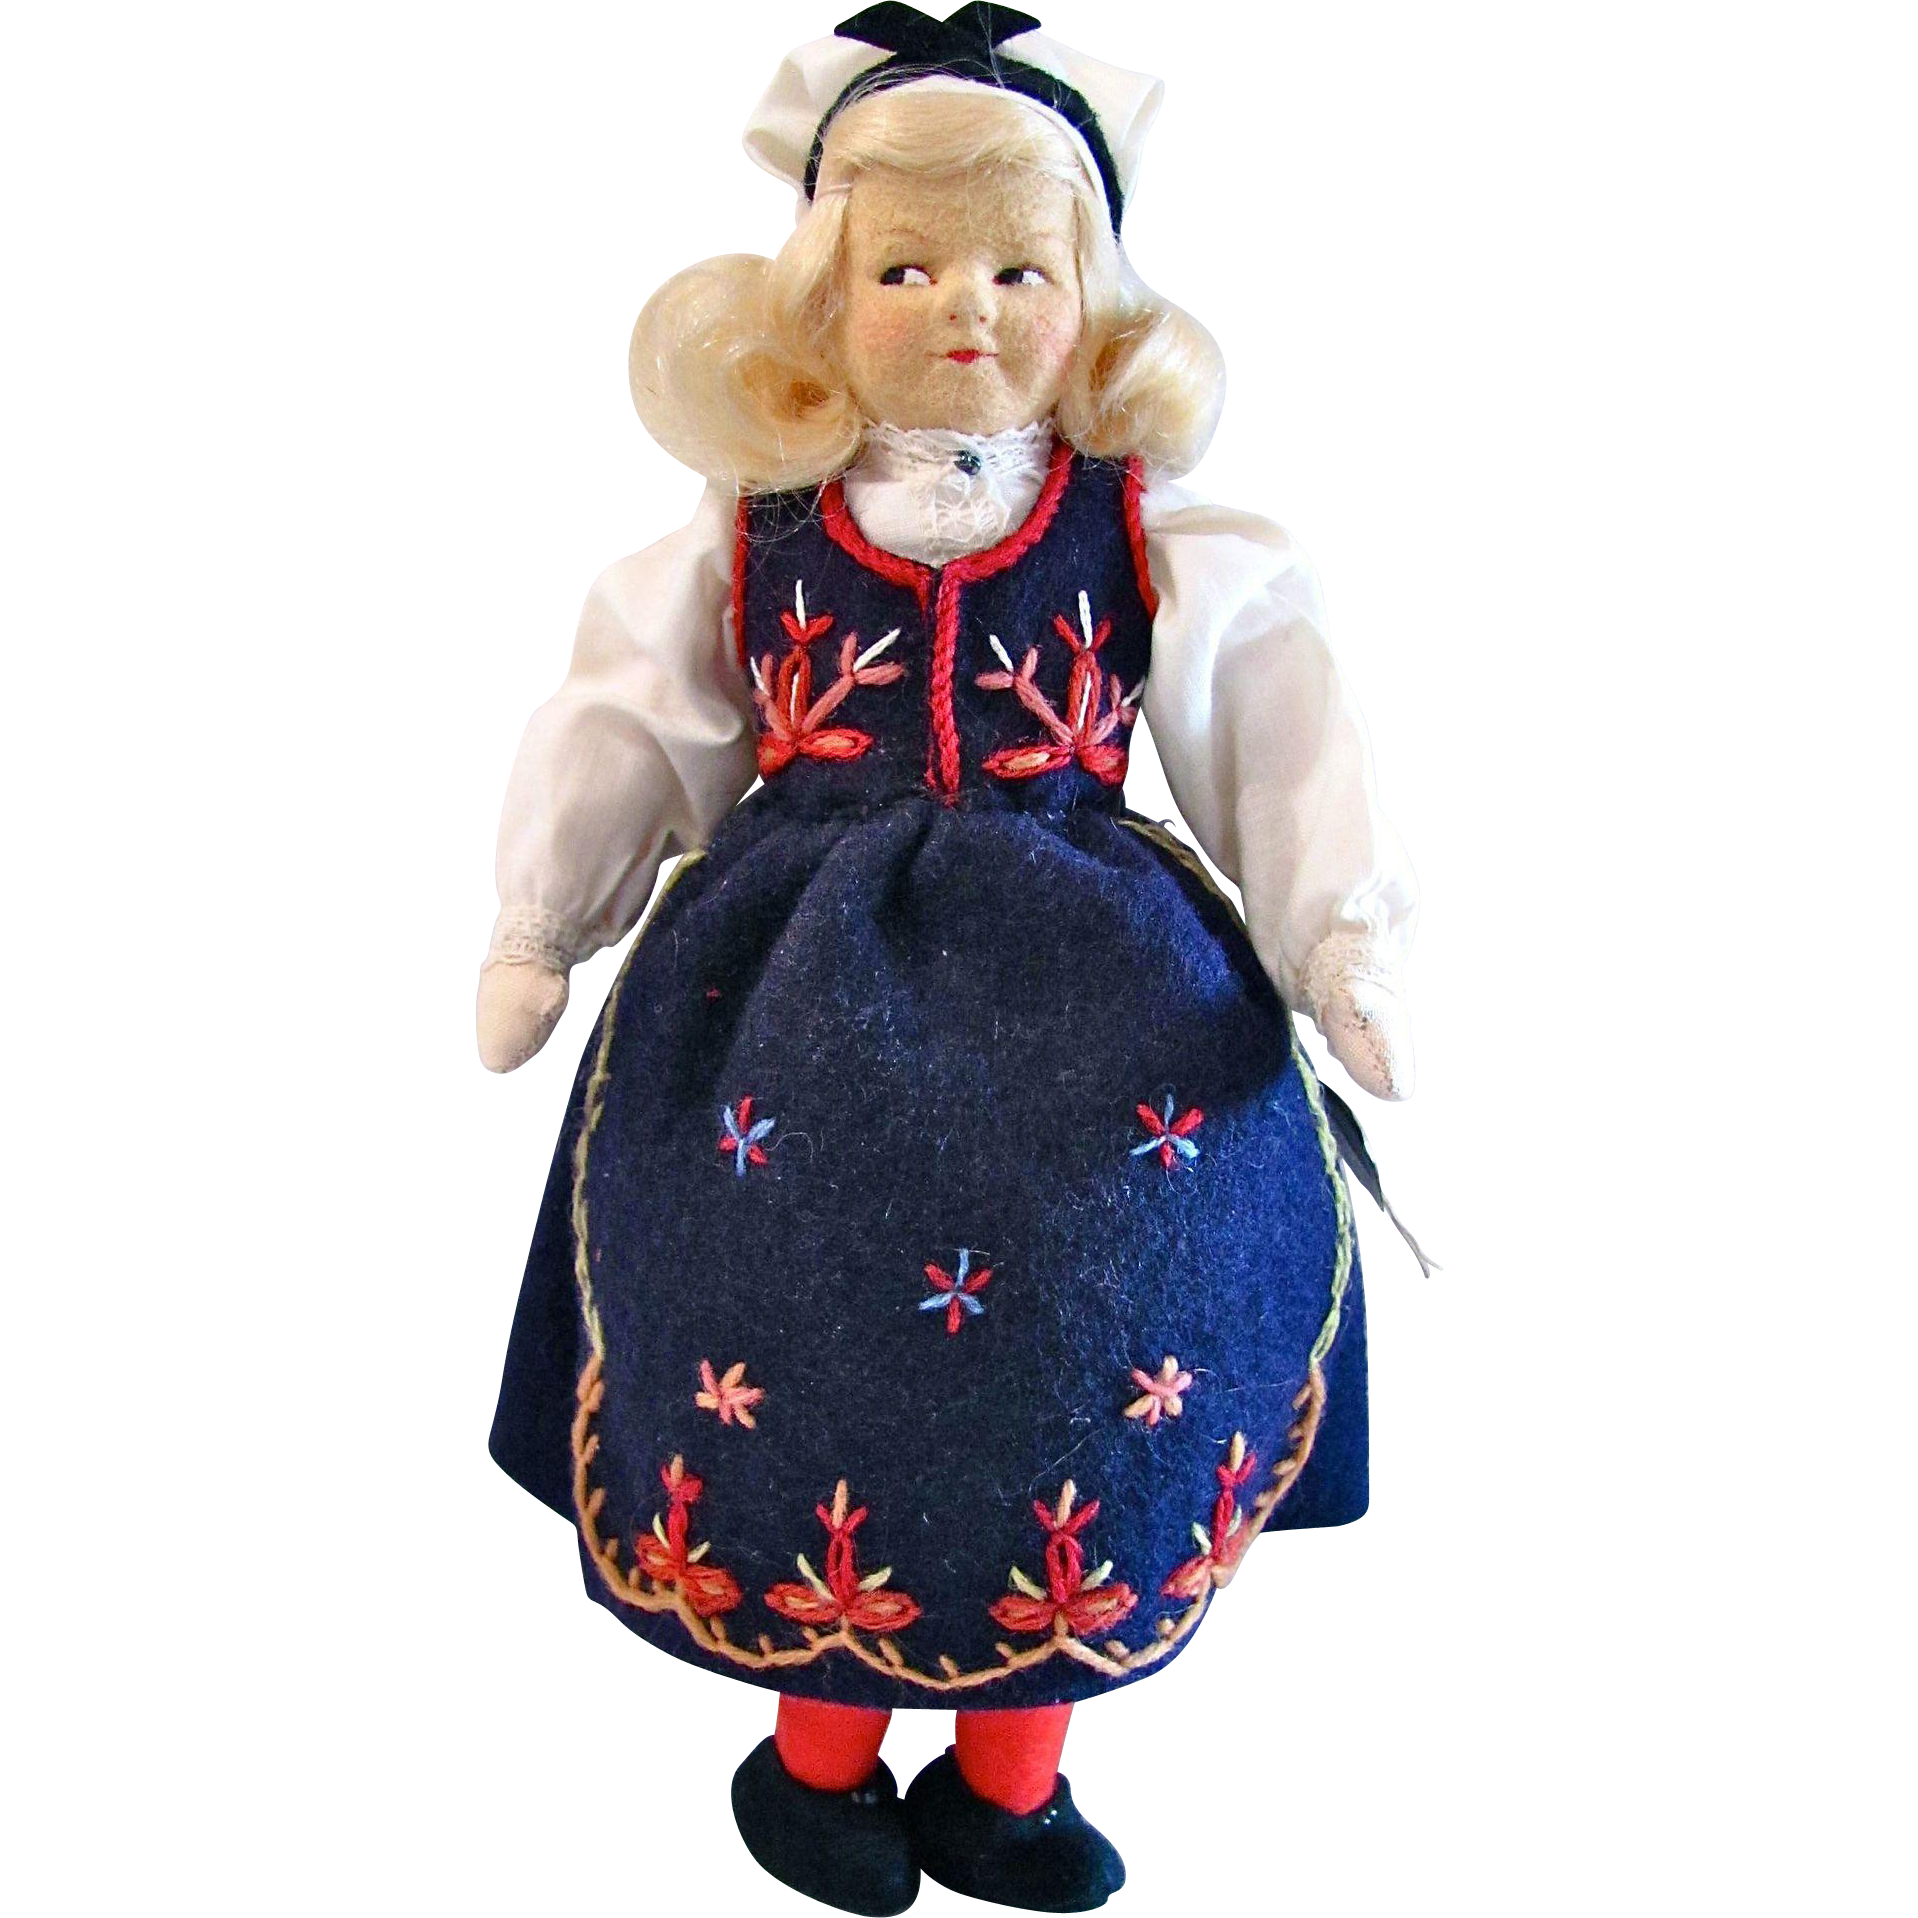 Ronnaug Petterssen Handmade Felt Doll, Norway, Post World War II